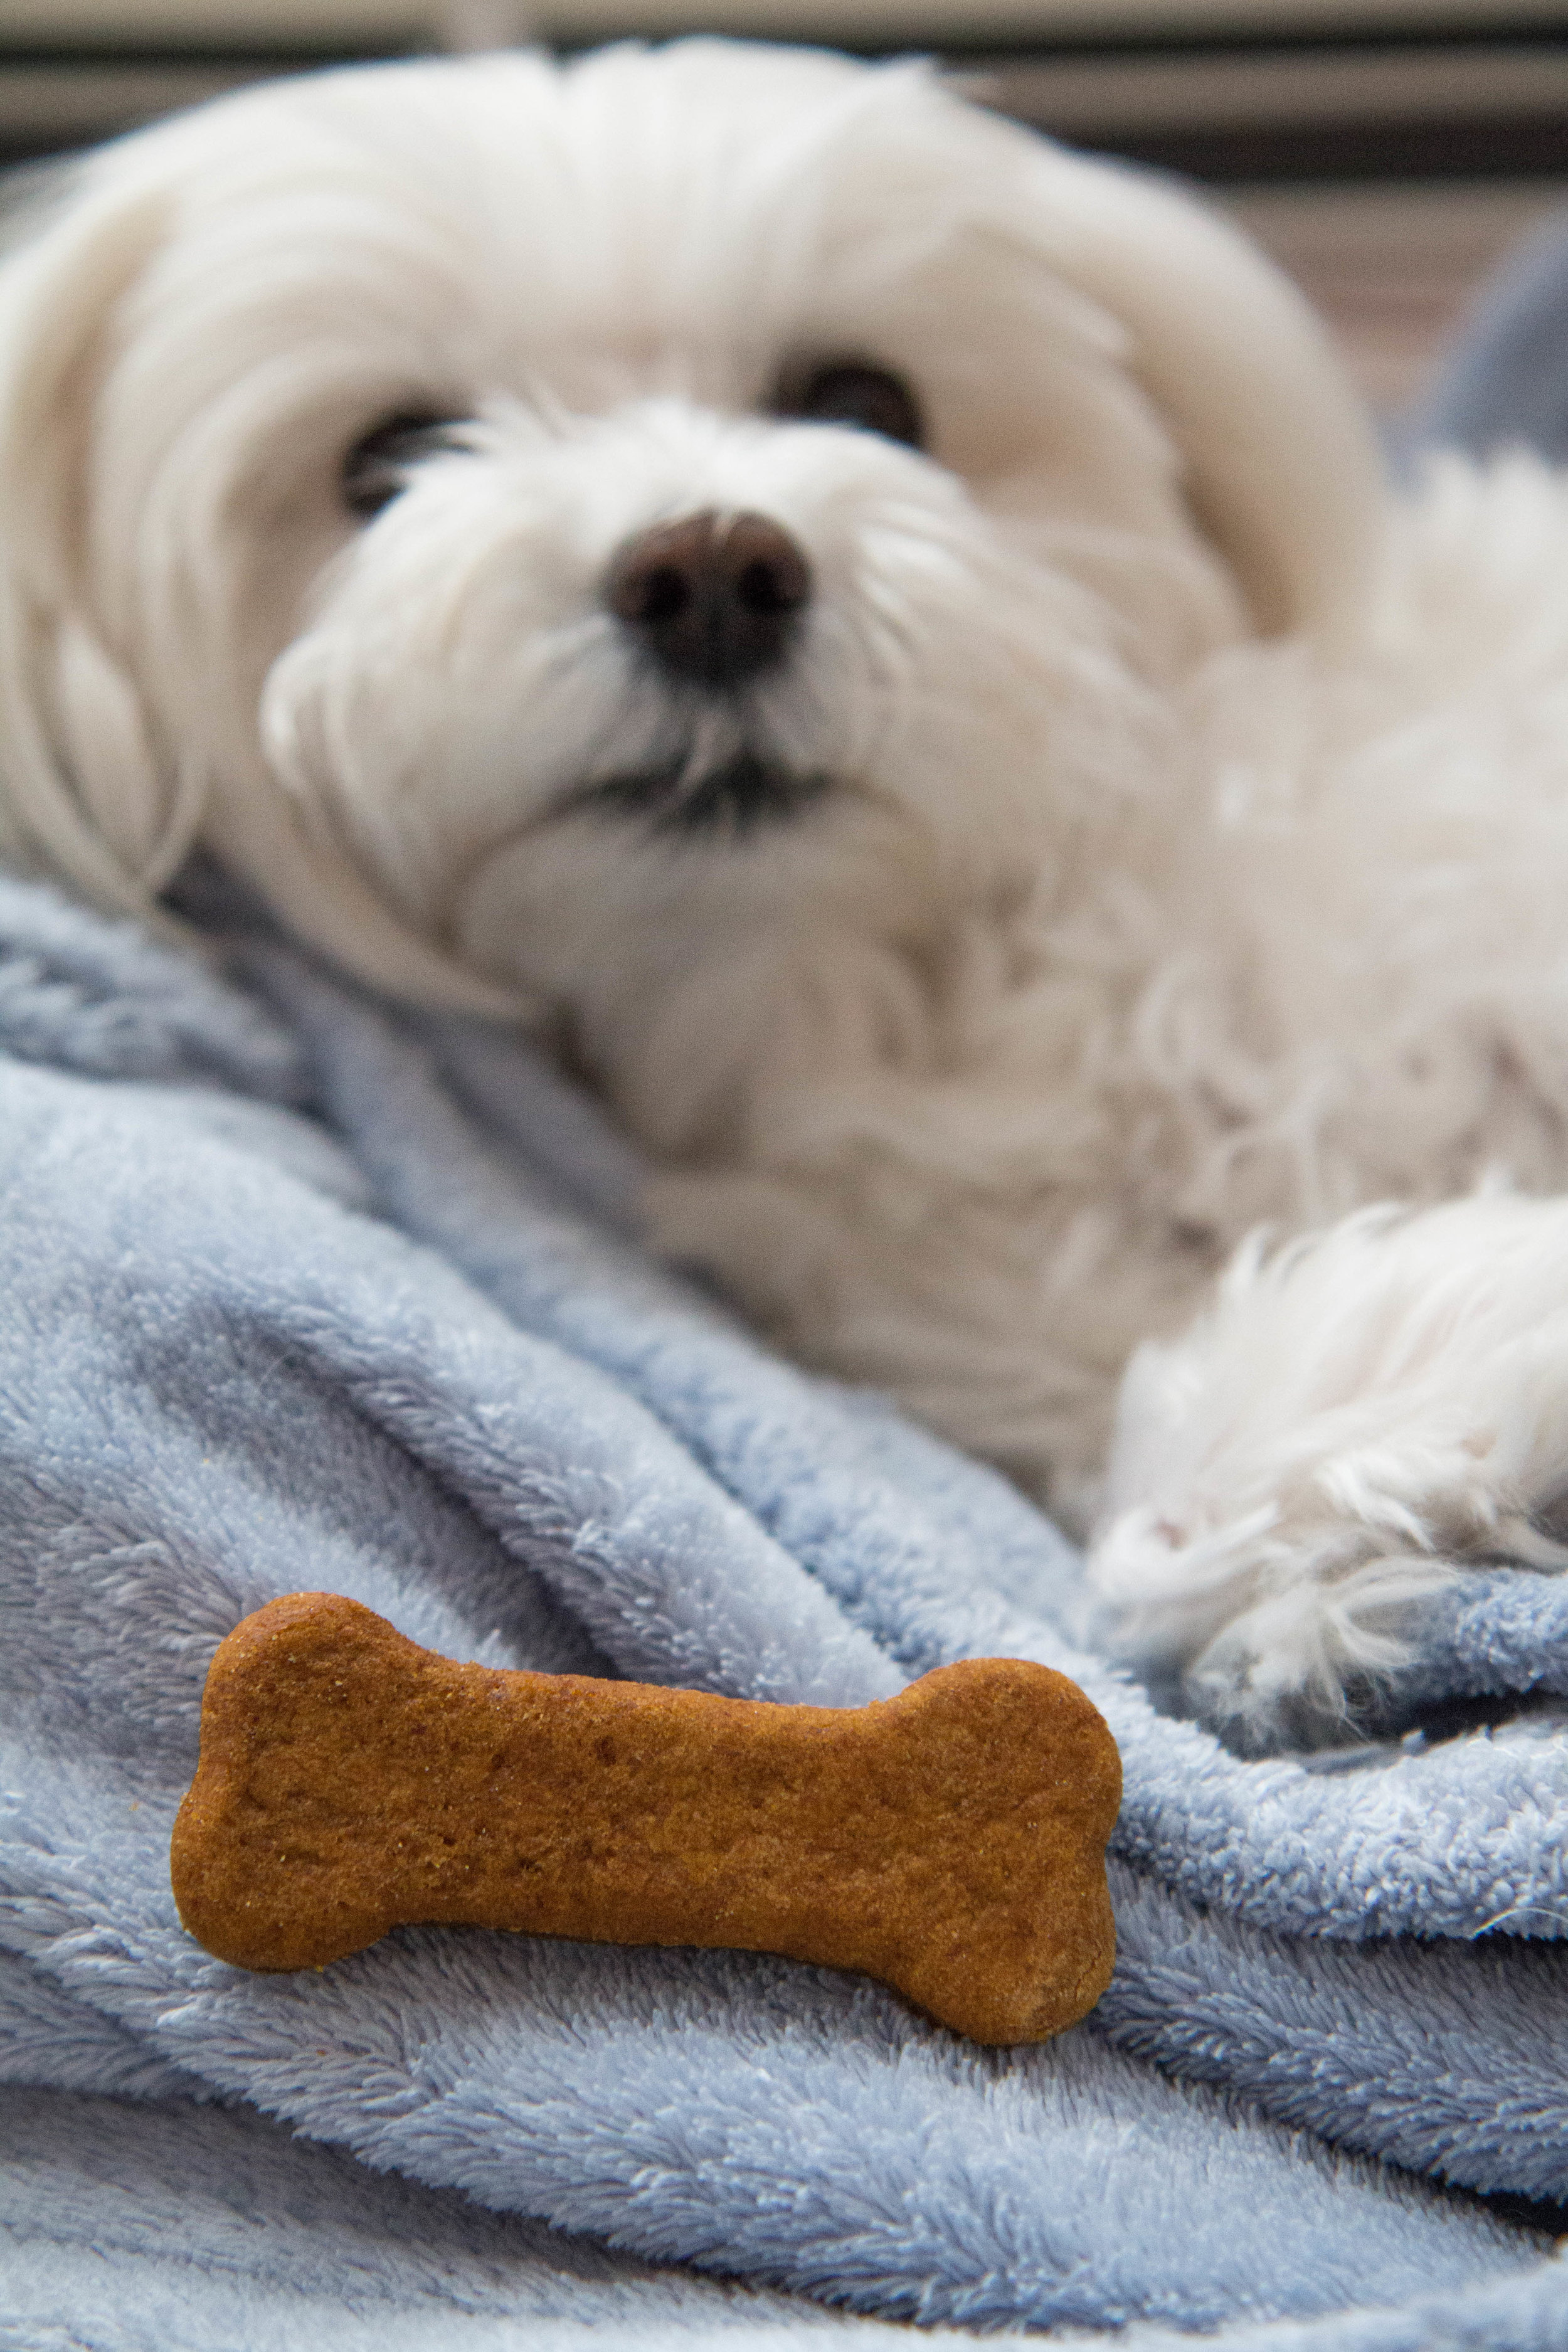 Delicious and healthy homemade dog treats made with pumpkin and peanut butter.